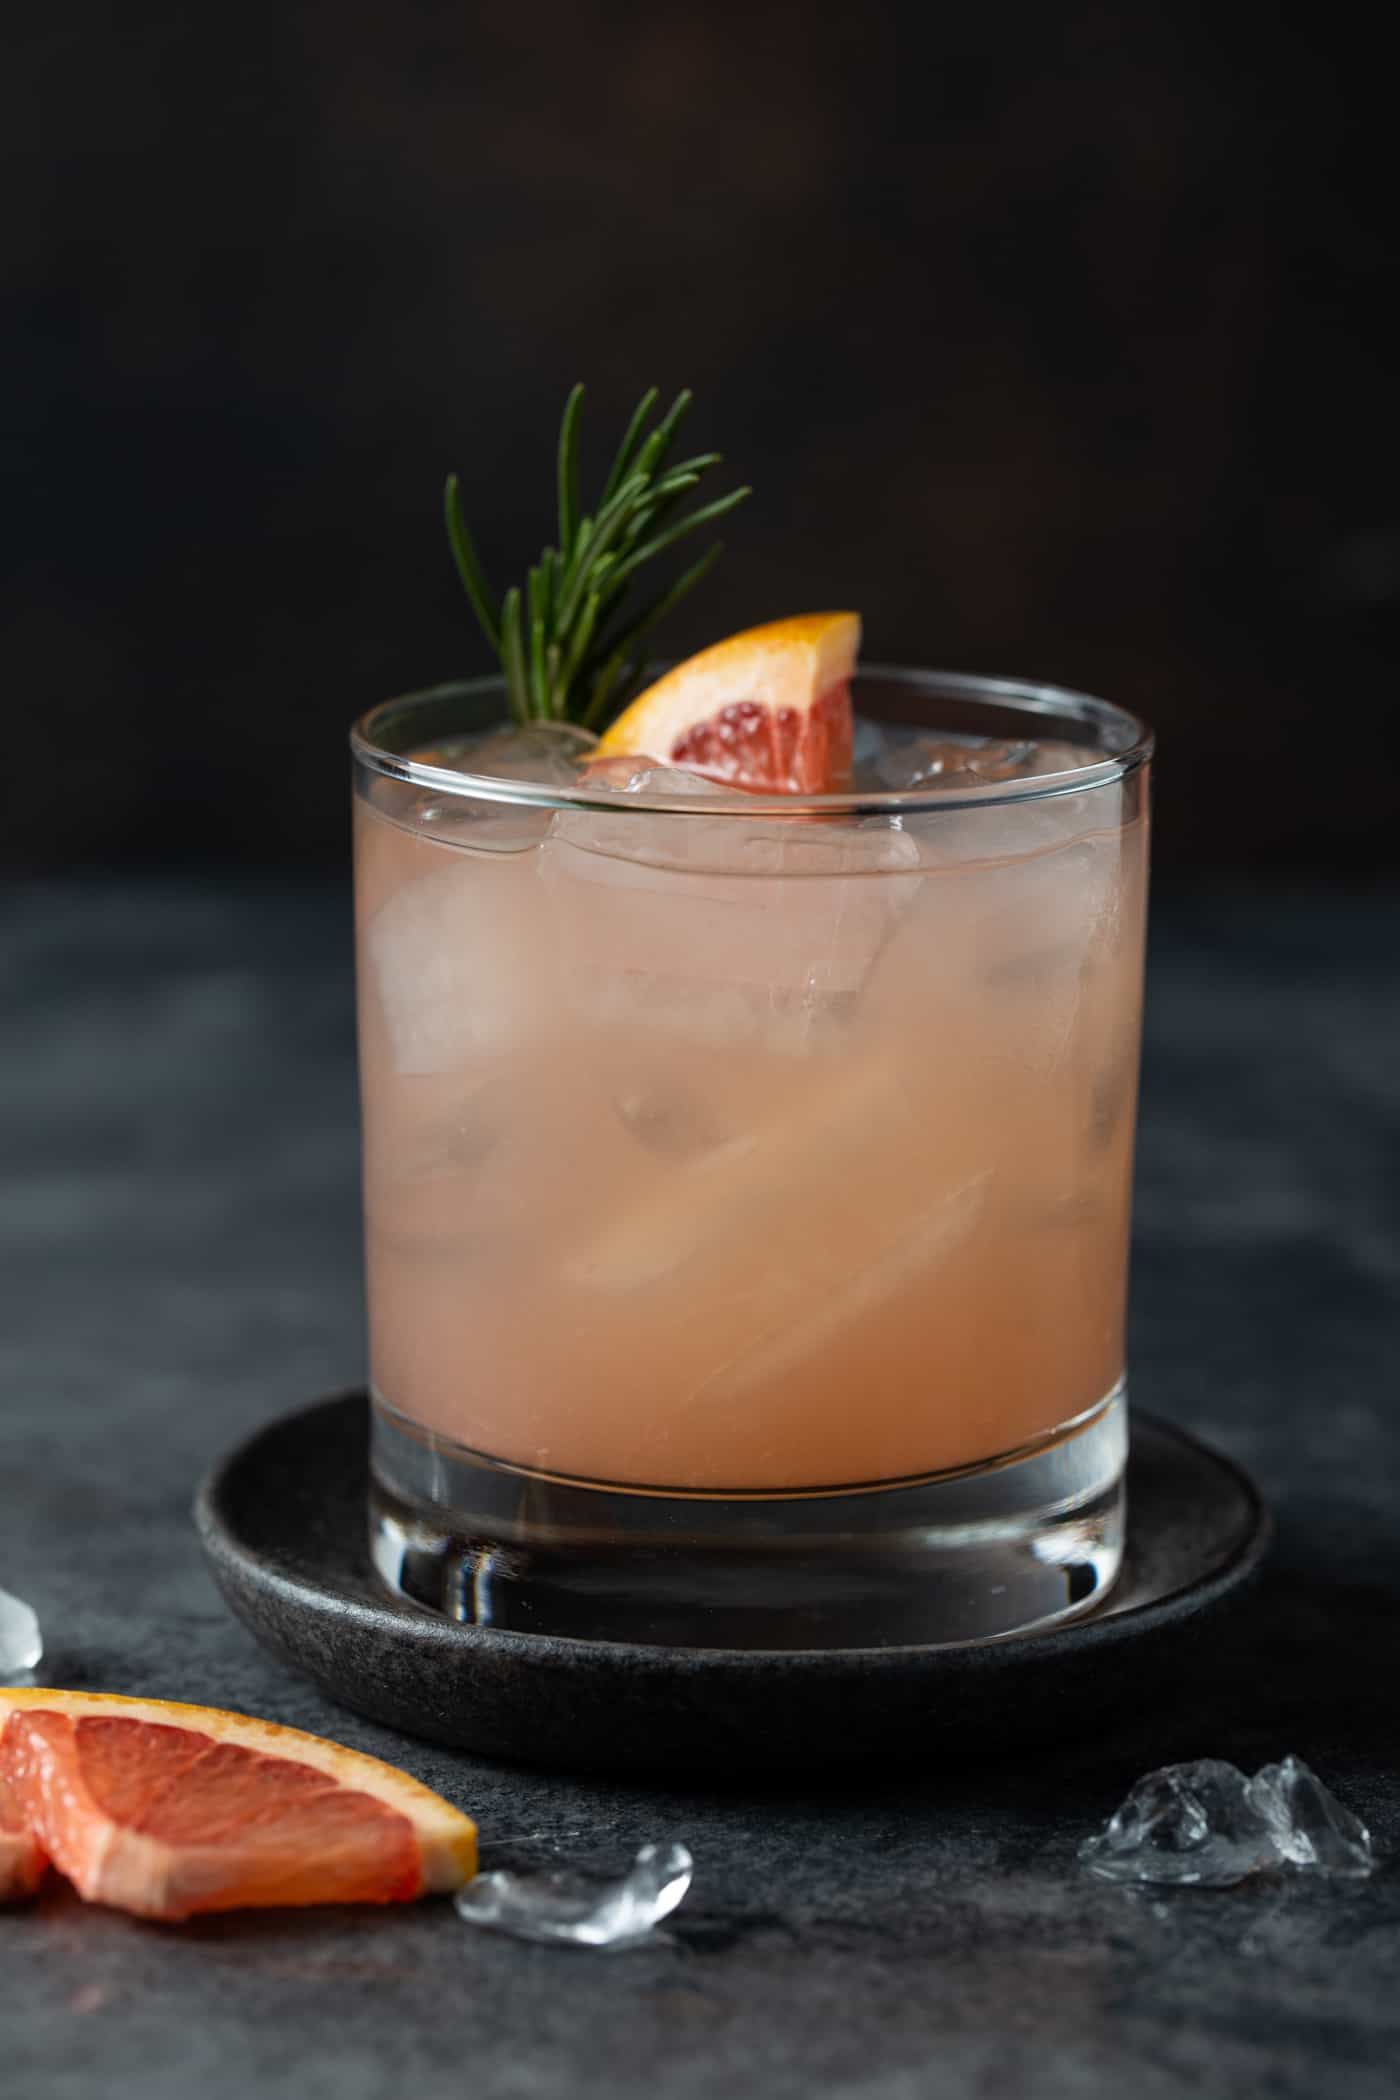 Close up image of pink grapefruit juice in a low ball glass on a dark background.